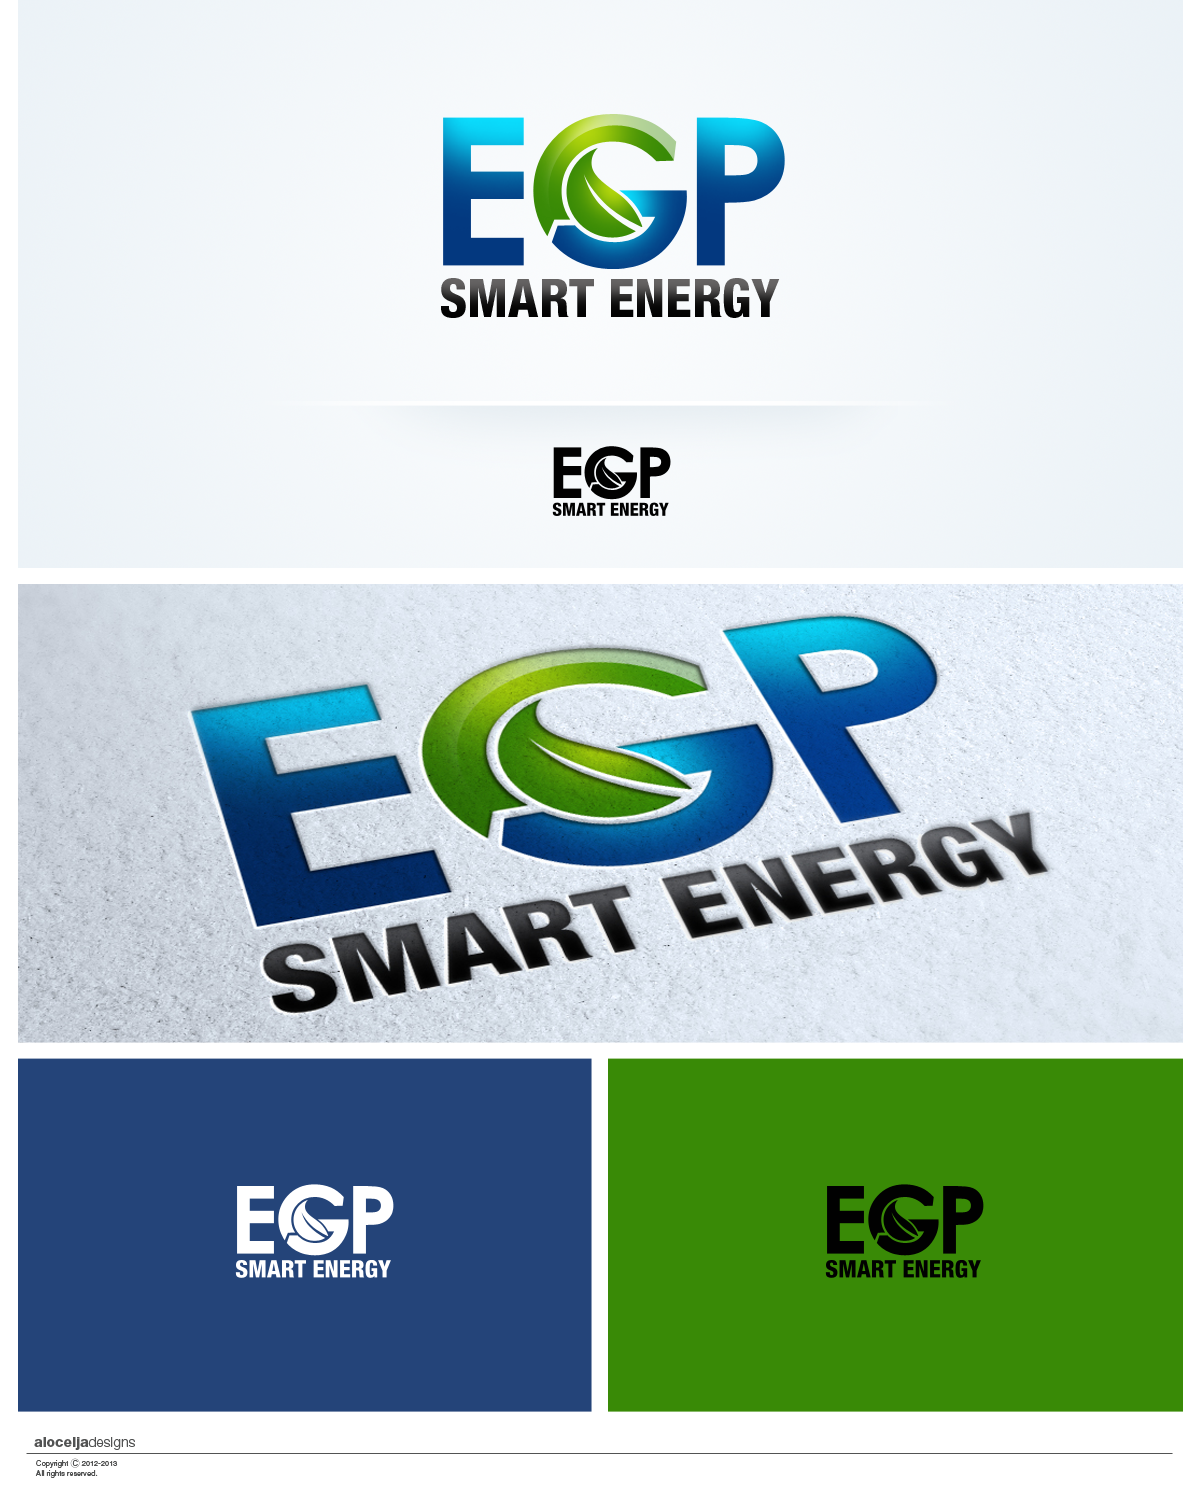 Logo Design by alocelja - Entry No. 96 in the Logo Design Contest Captivating Logo Design for EGP Smart Energy.